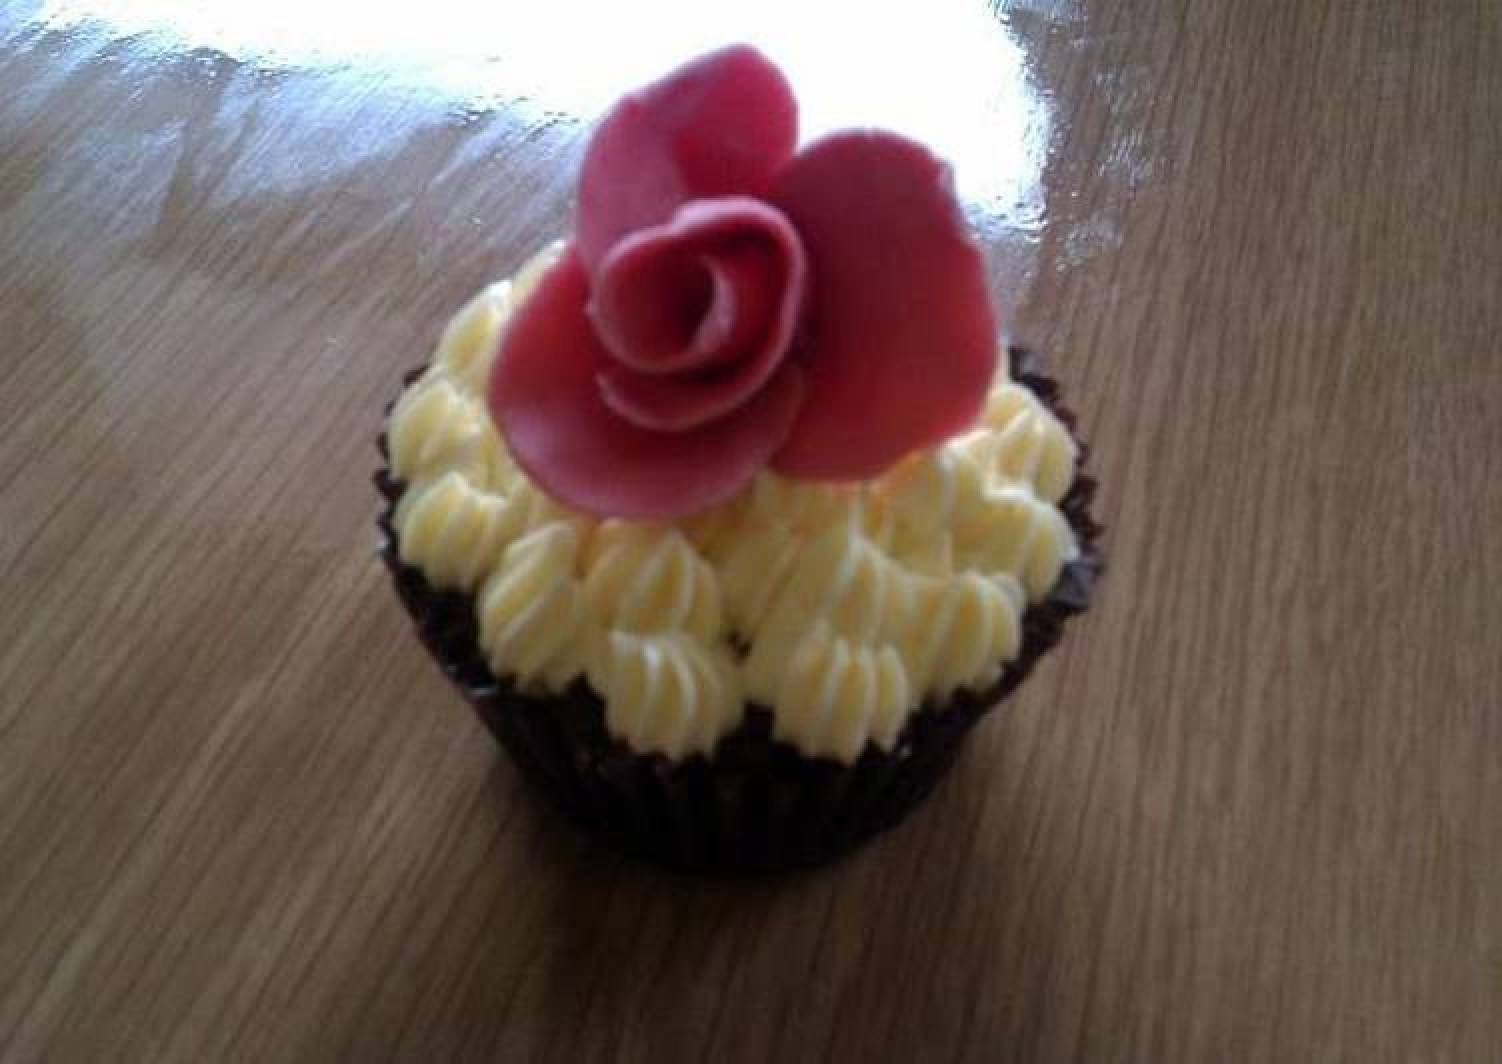 Indugant chocolate muffins with a vanilla bean butter cream topped with a homemade rose